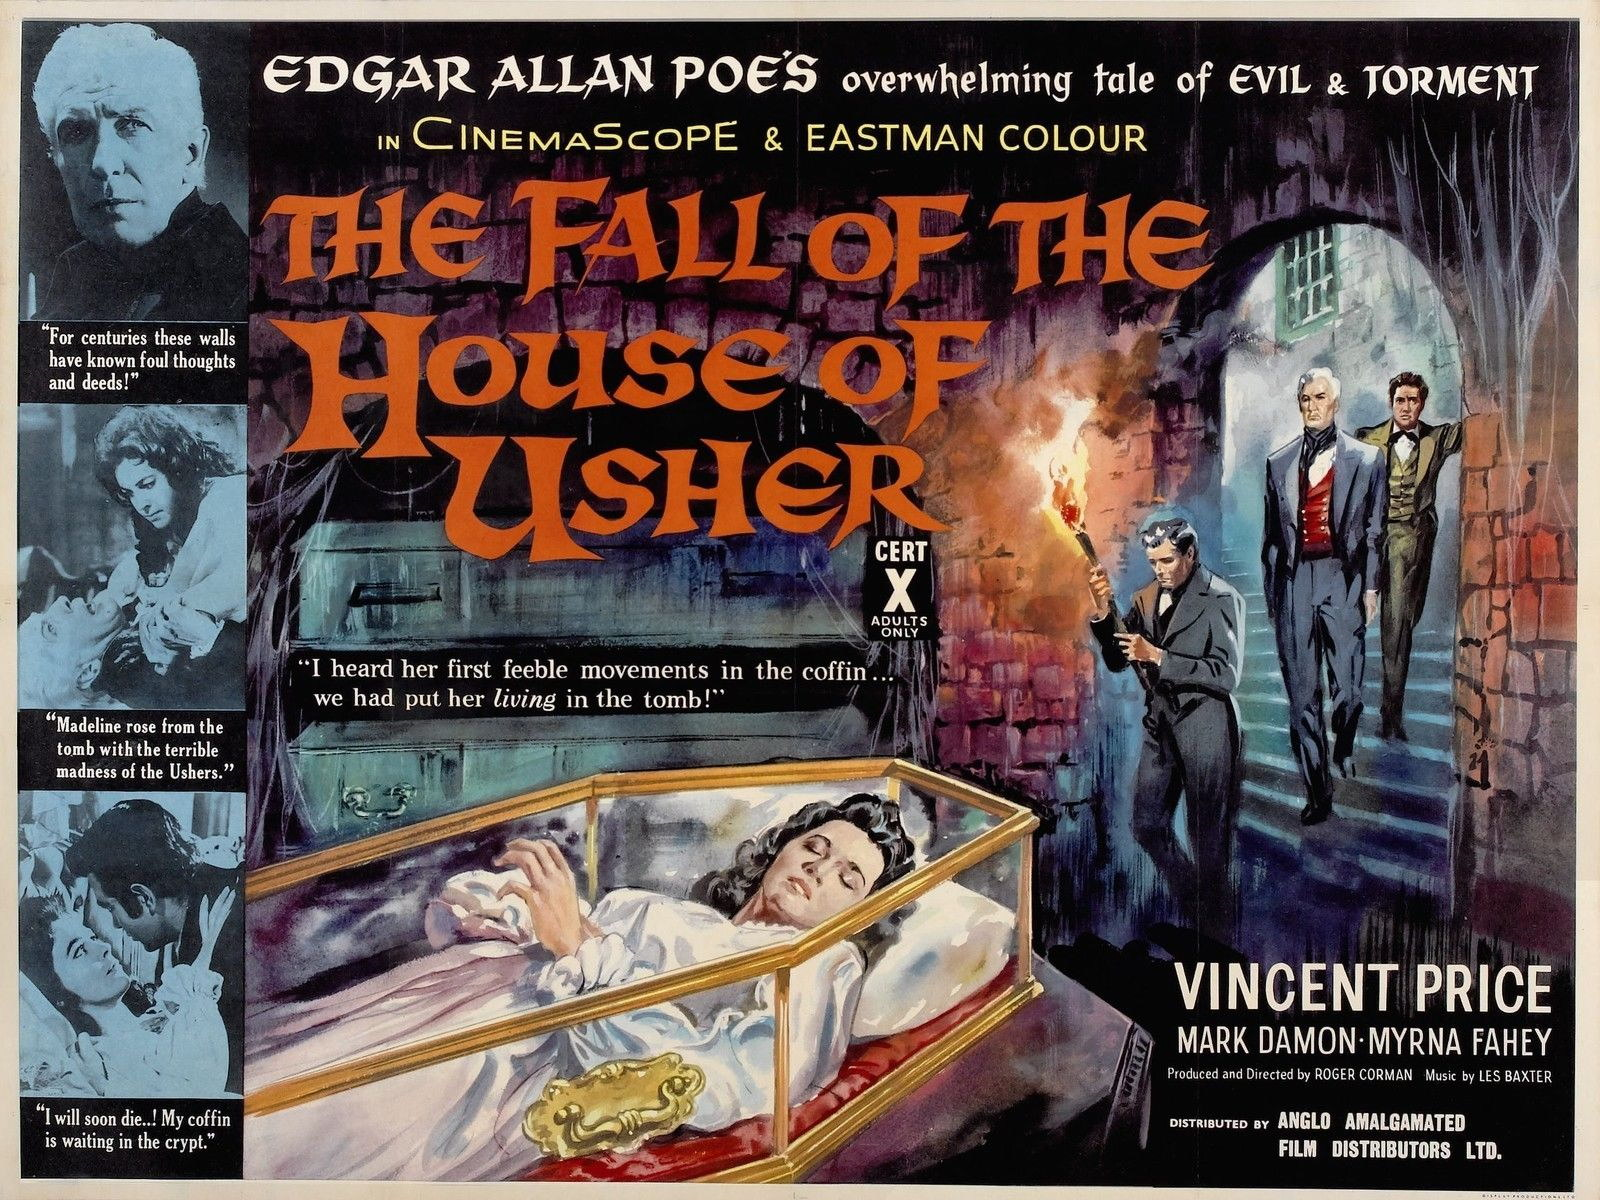 72404 THE FALL OF THE HOUSE OF USHER Vincent Price Wall Print Poster Affiche